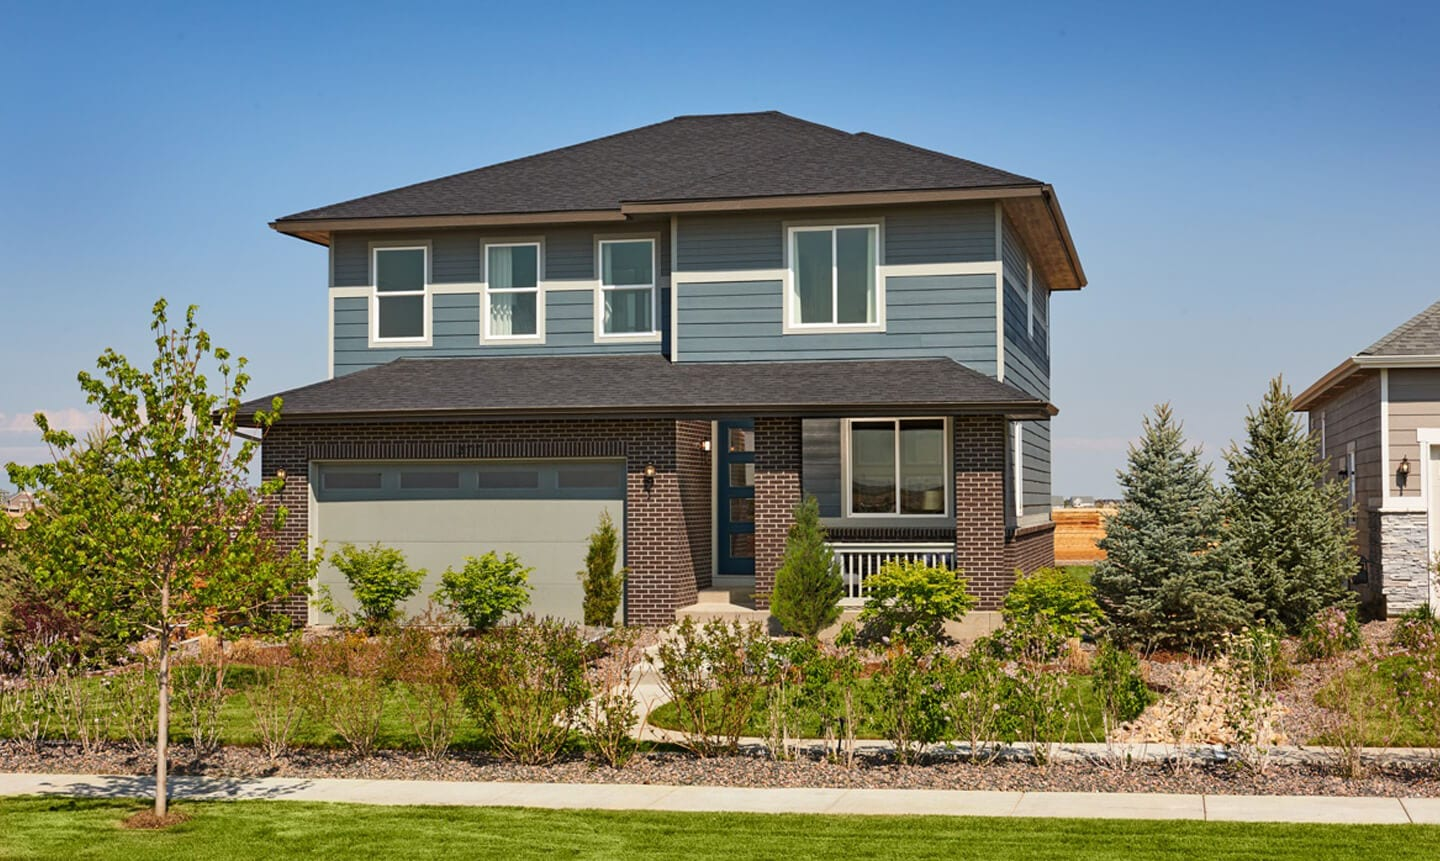 A brand new Richmond American Homes two storey home in Harmony.